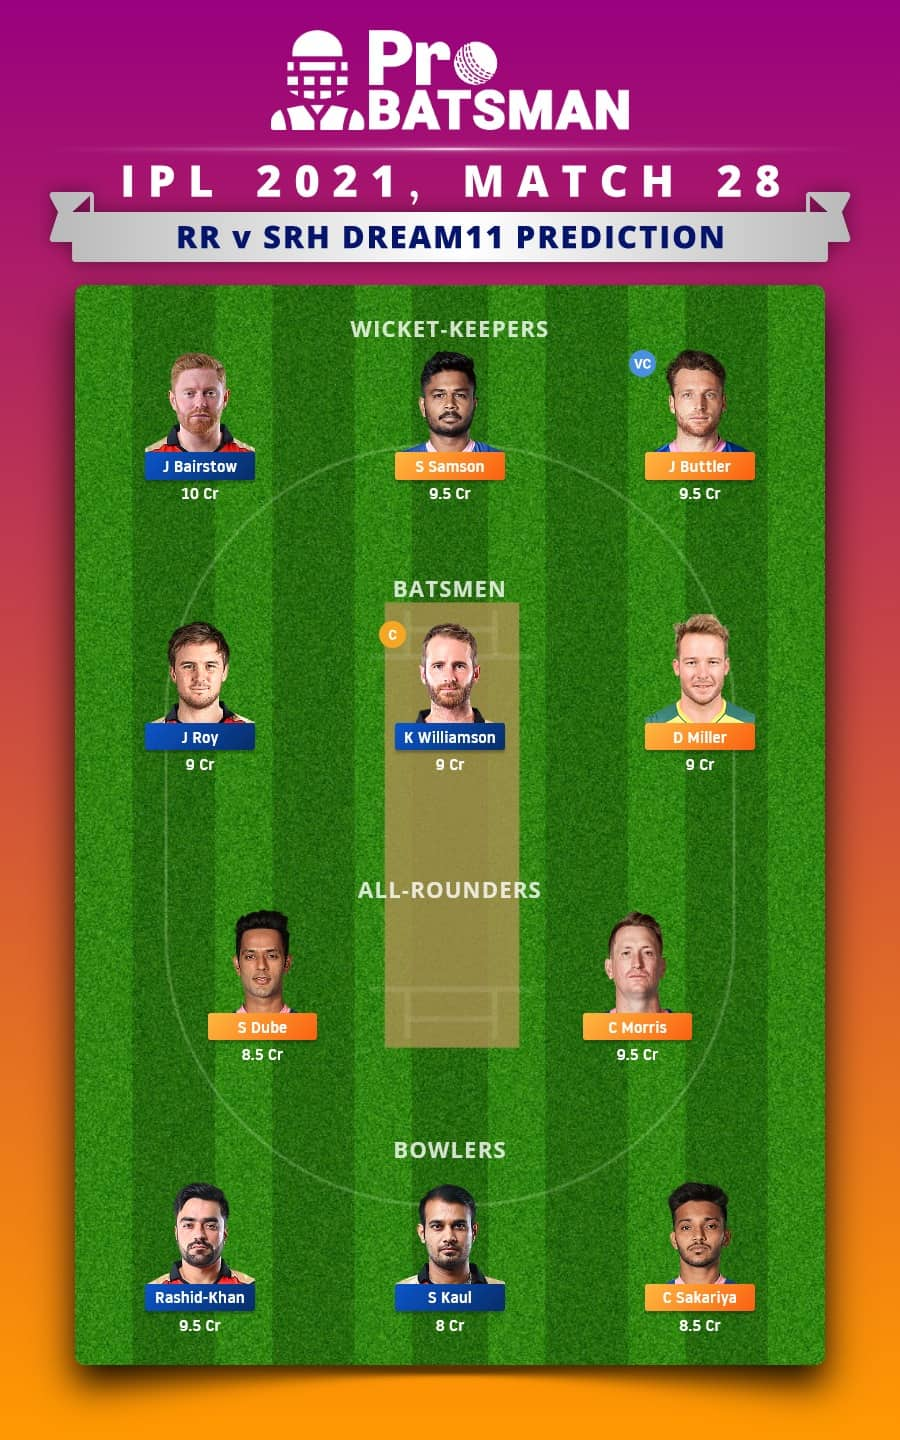 RR vs SRH Dream11 Fantasy Team Prediction